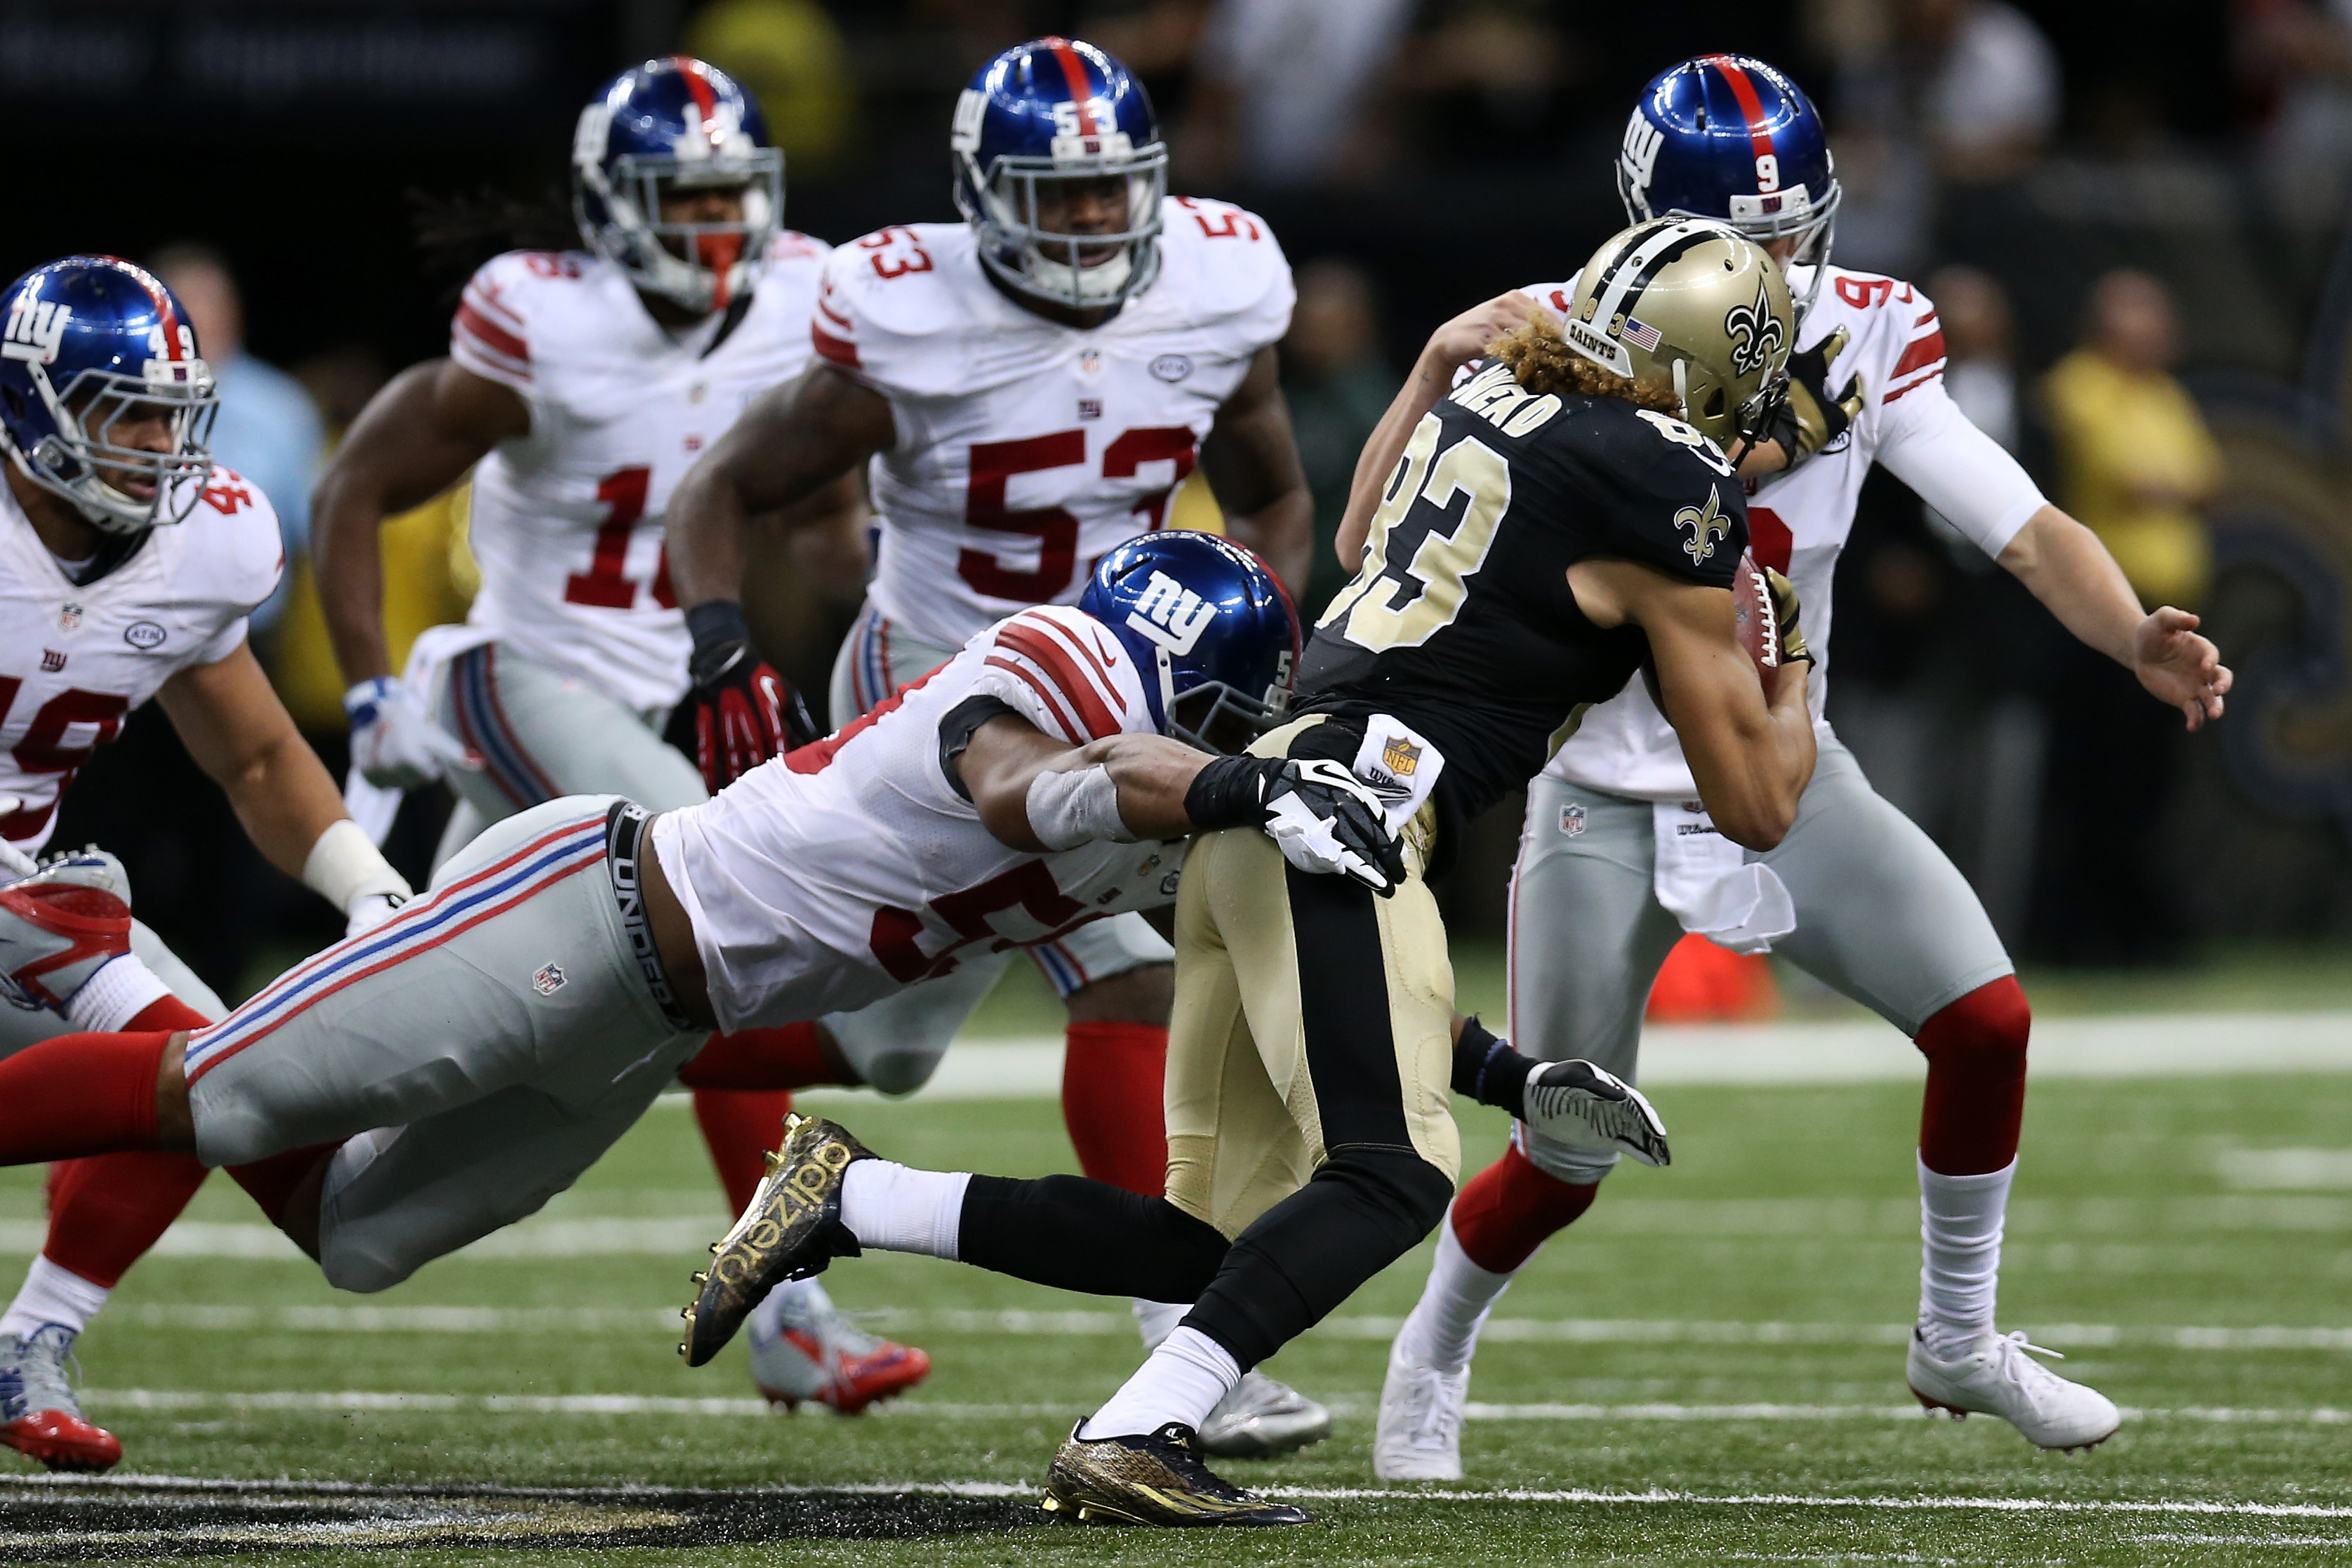 Brad Wing of the Giants drew a game-deciding face mask penalty on this play